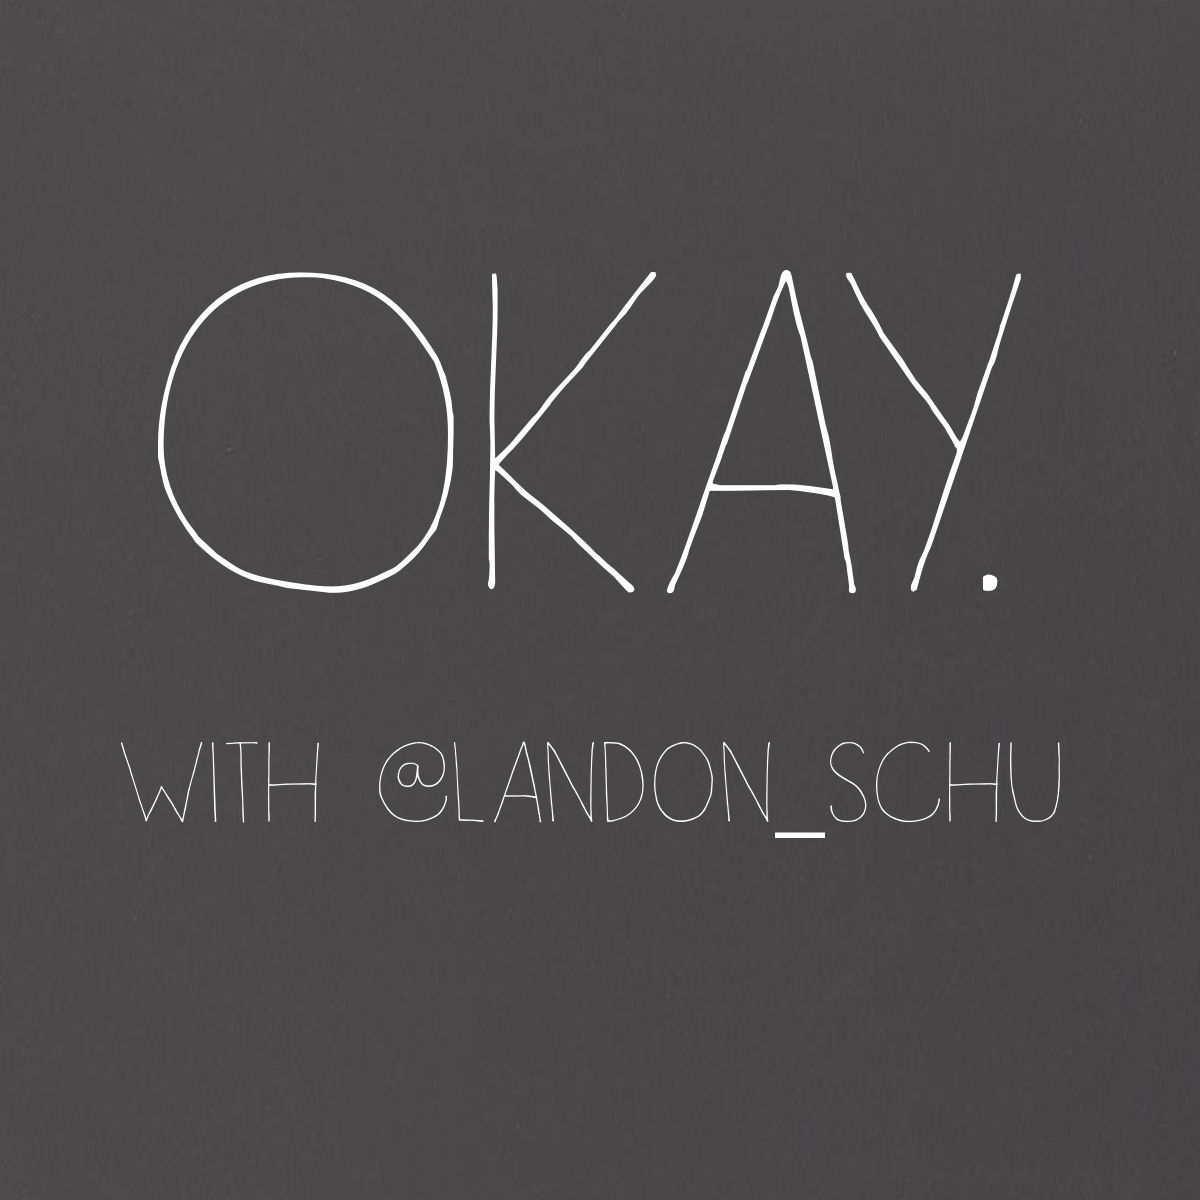 Okay. (With Landon Schumacker)